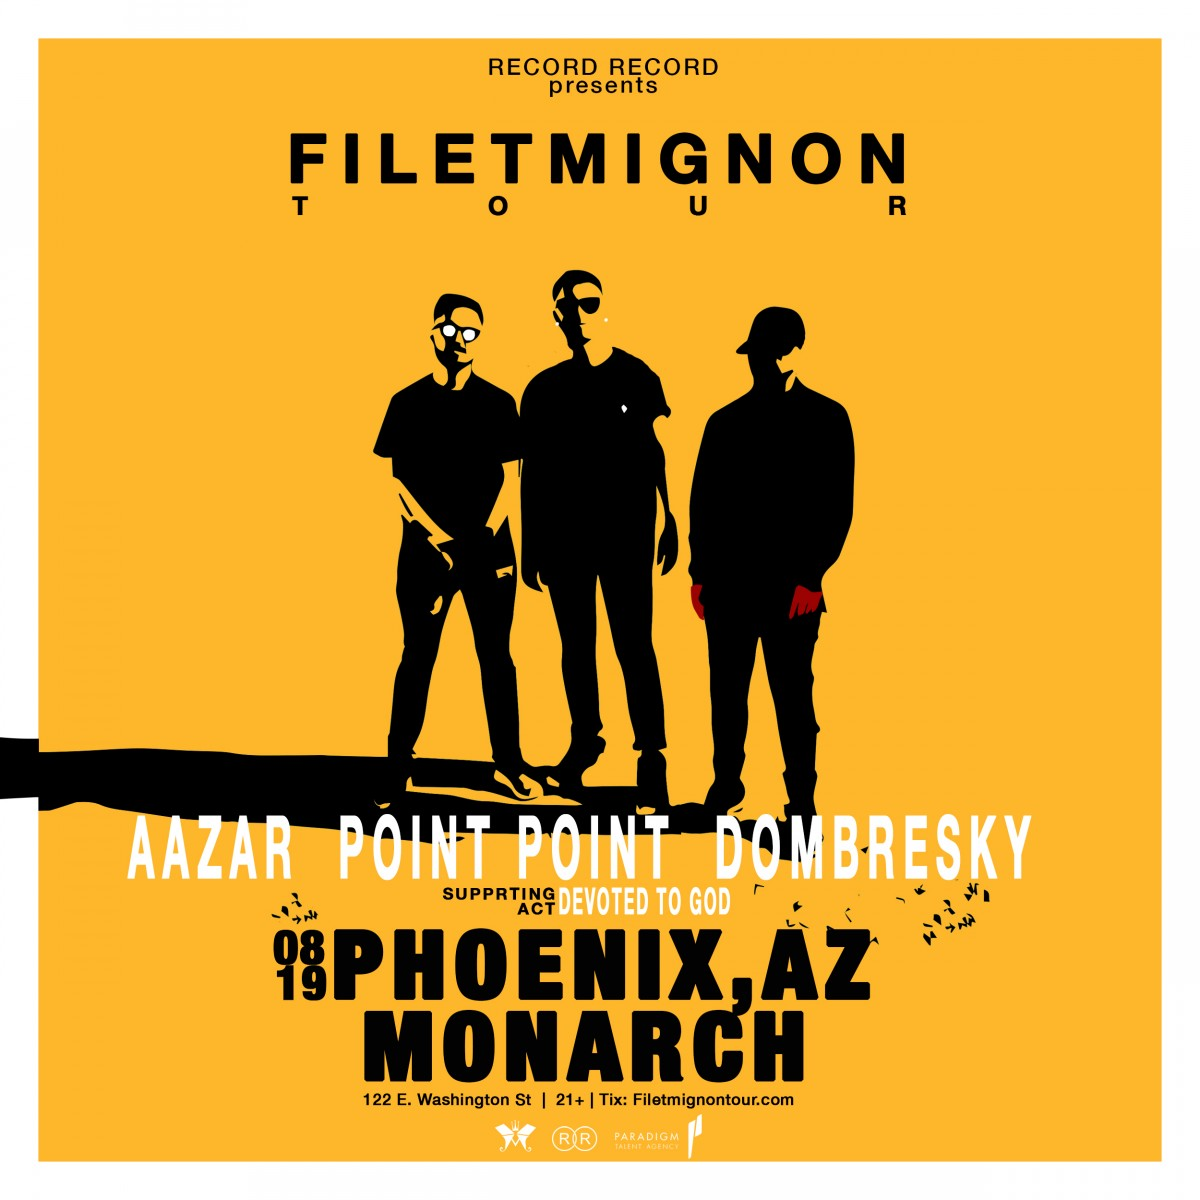 Flyer for Filet Mignon Tour - Aazar, Point Point, & Dombresky